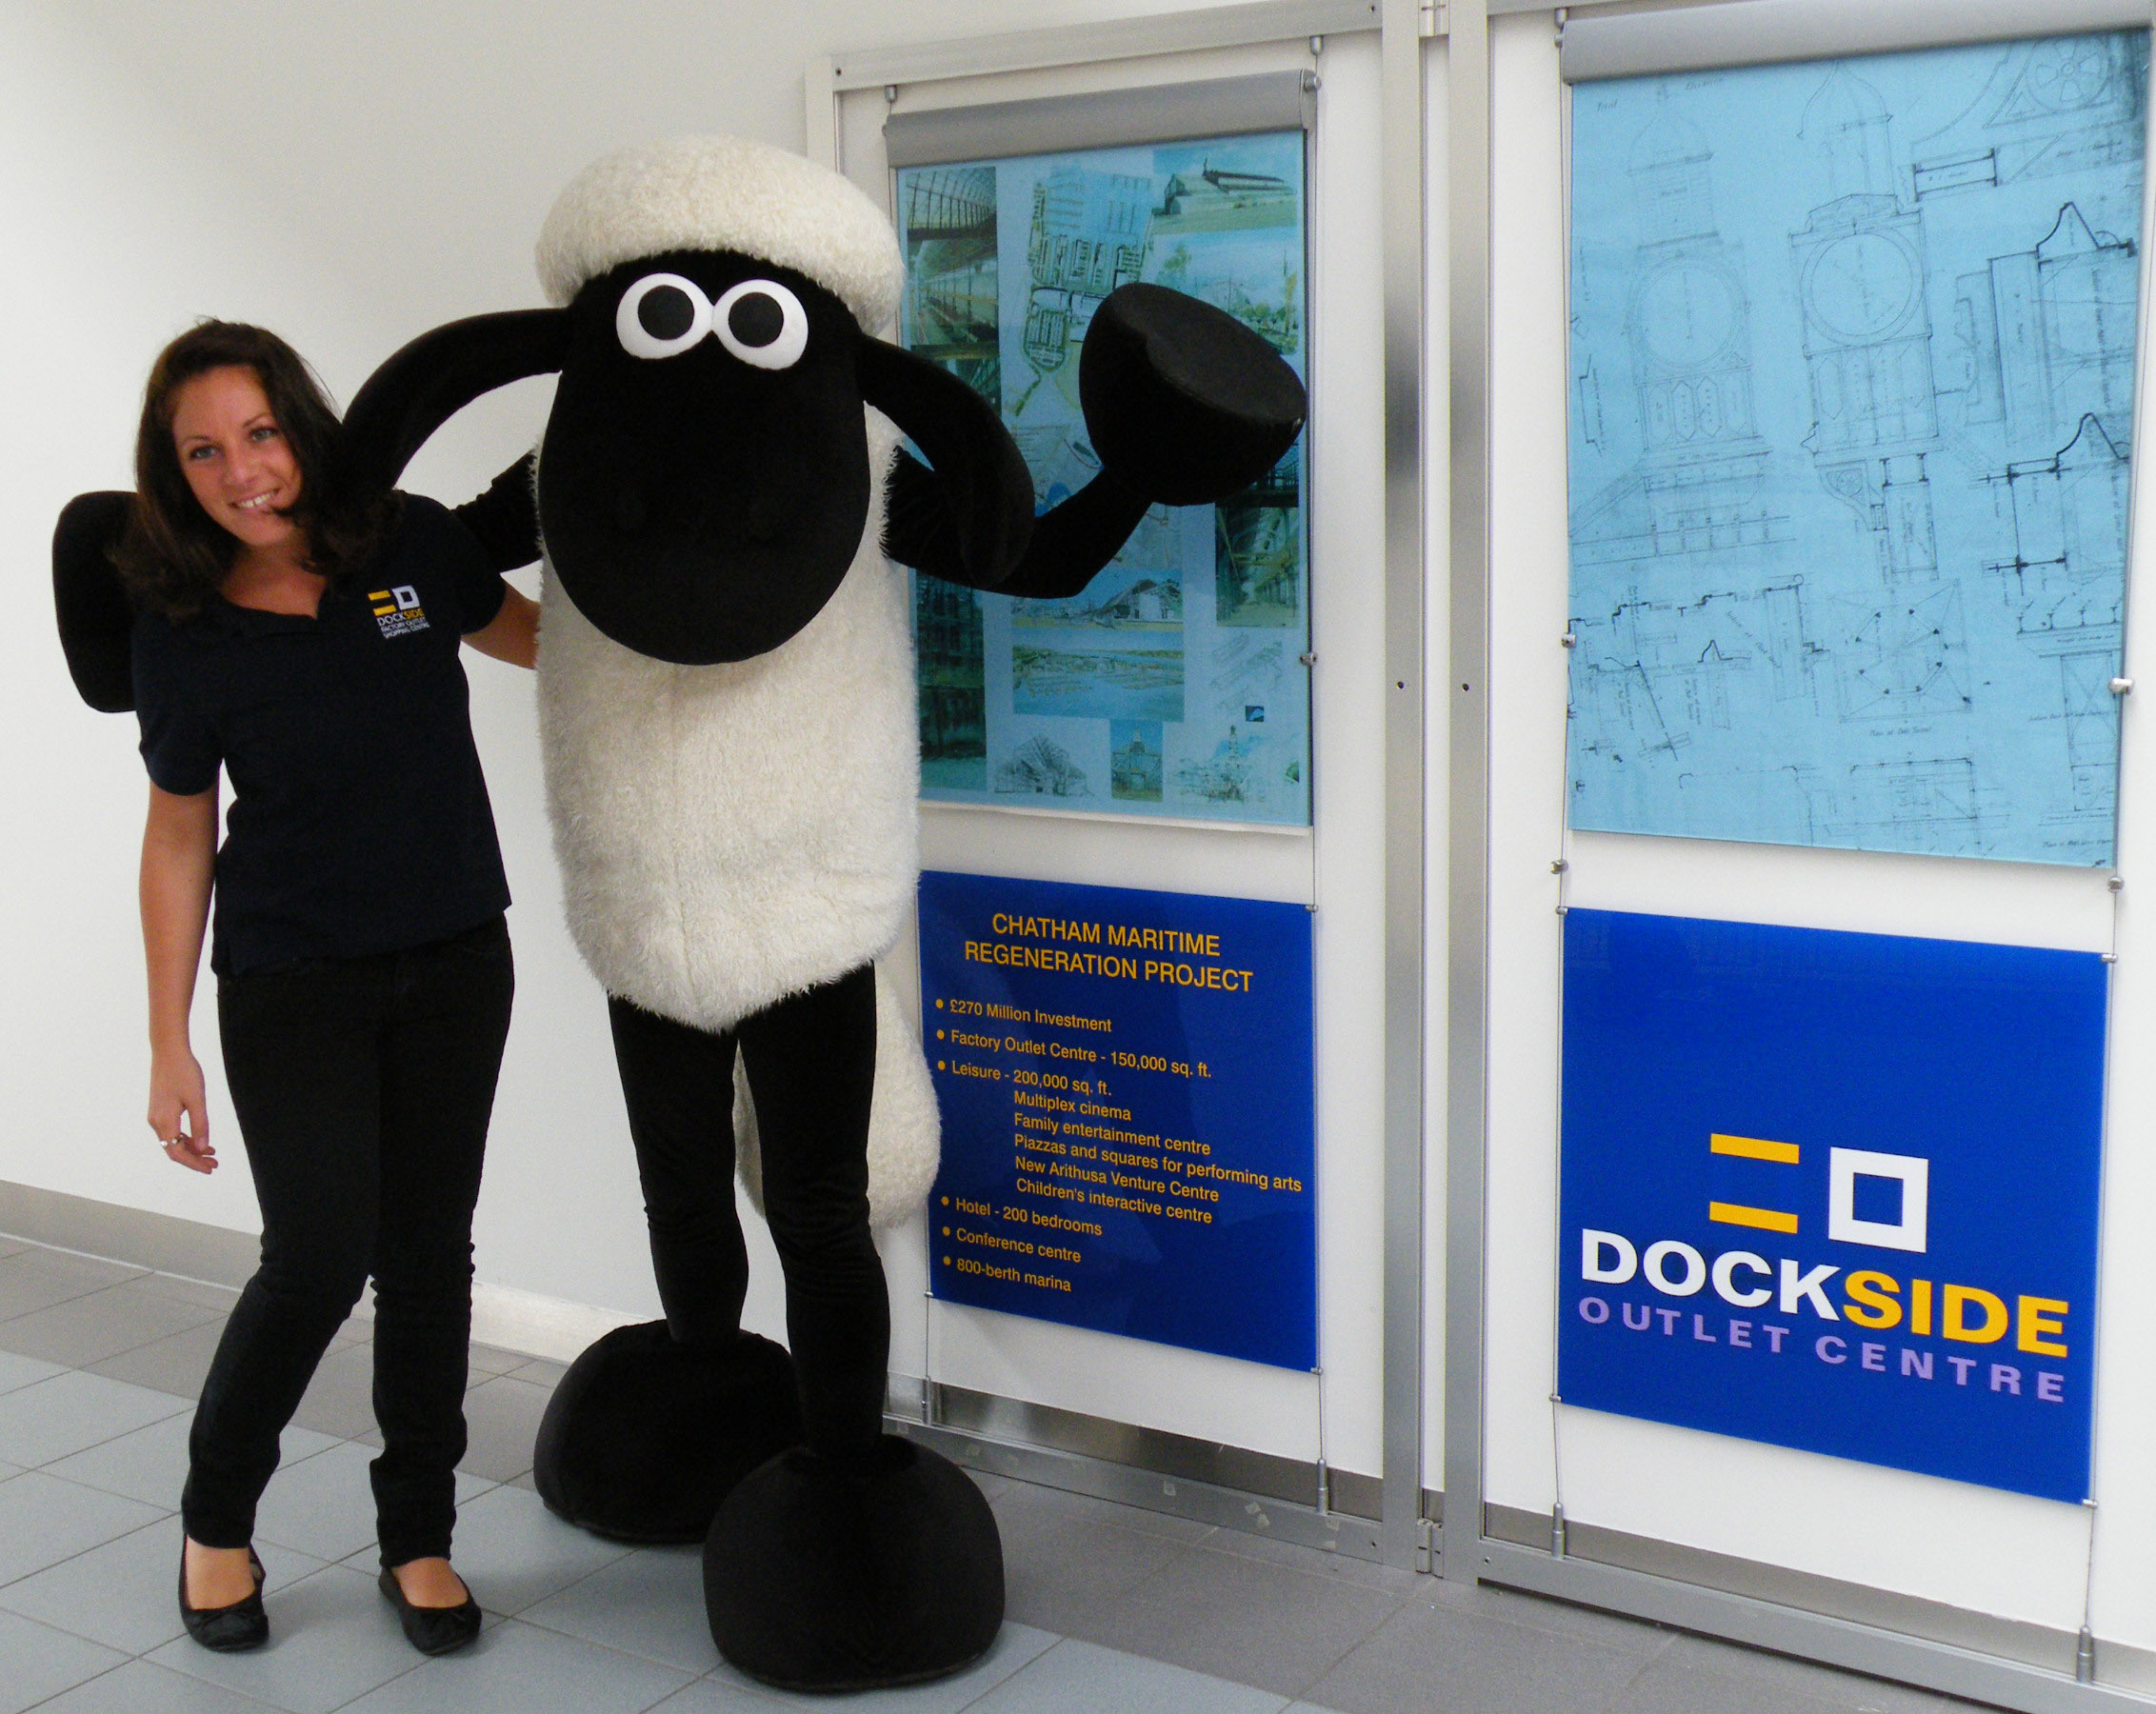 Shaun the Sheep at Dockside